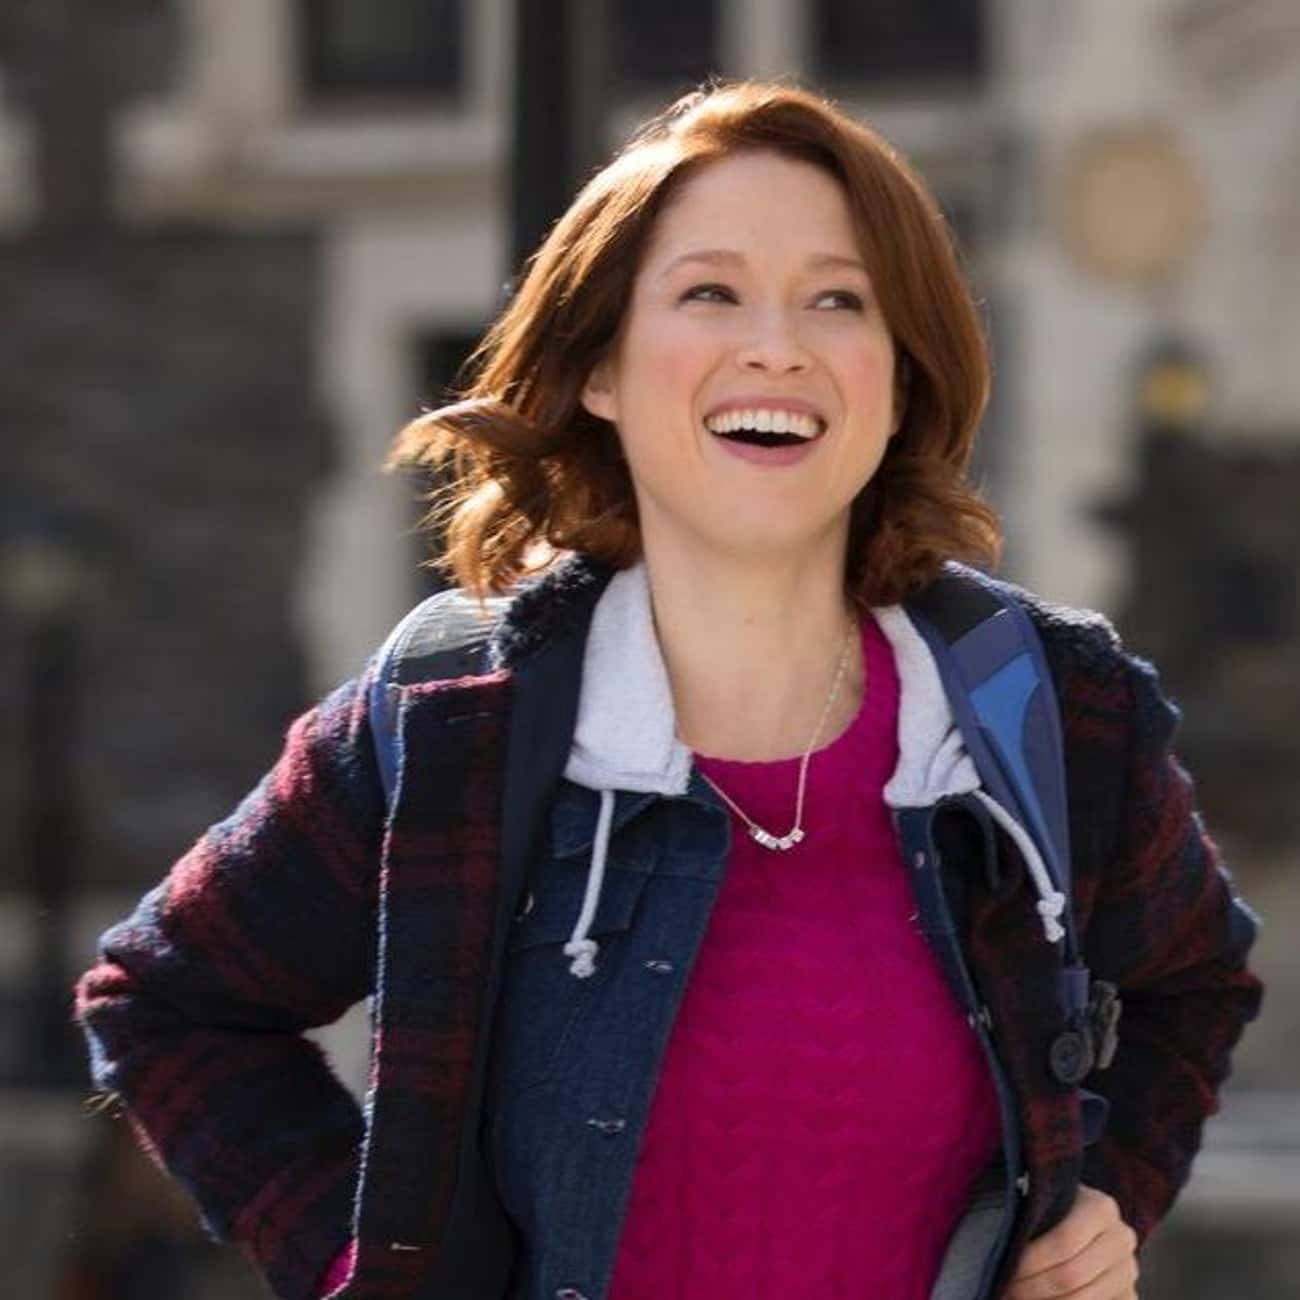 Unbreakable Kimmy Schmidt - Se is listed (or ranked) 1 on the list Ranking the Best Seasons of 'Unbreakable Kimmy Schmidt'